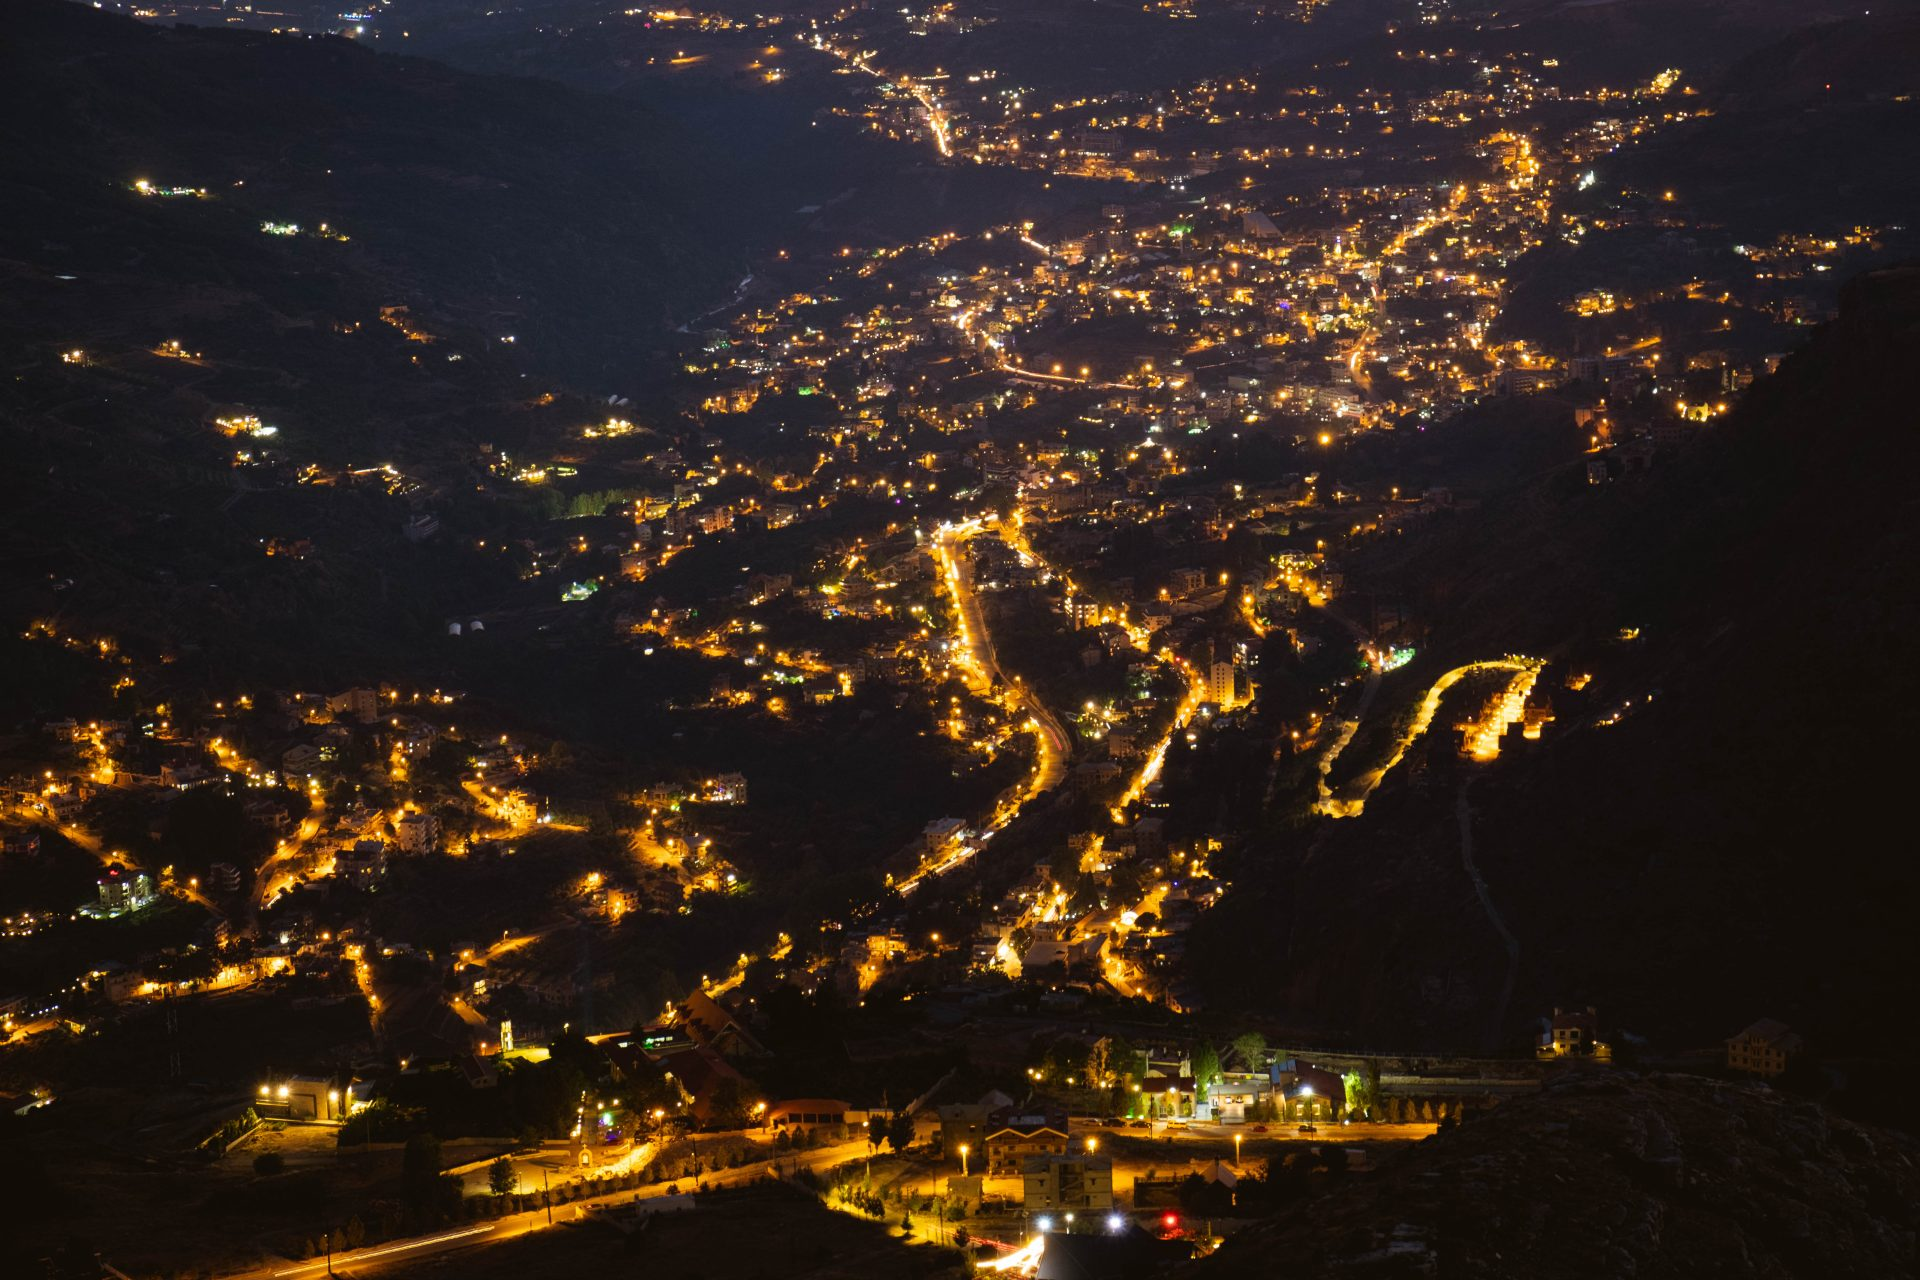 Panoramic view of the village of Faraya Hrajel in the lebanese mountain at night photo by Jo Kassis